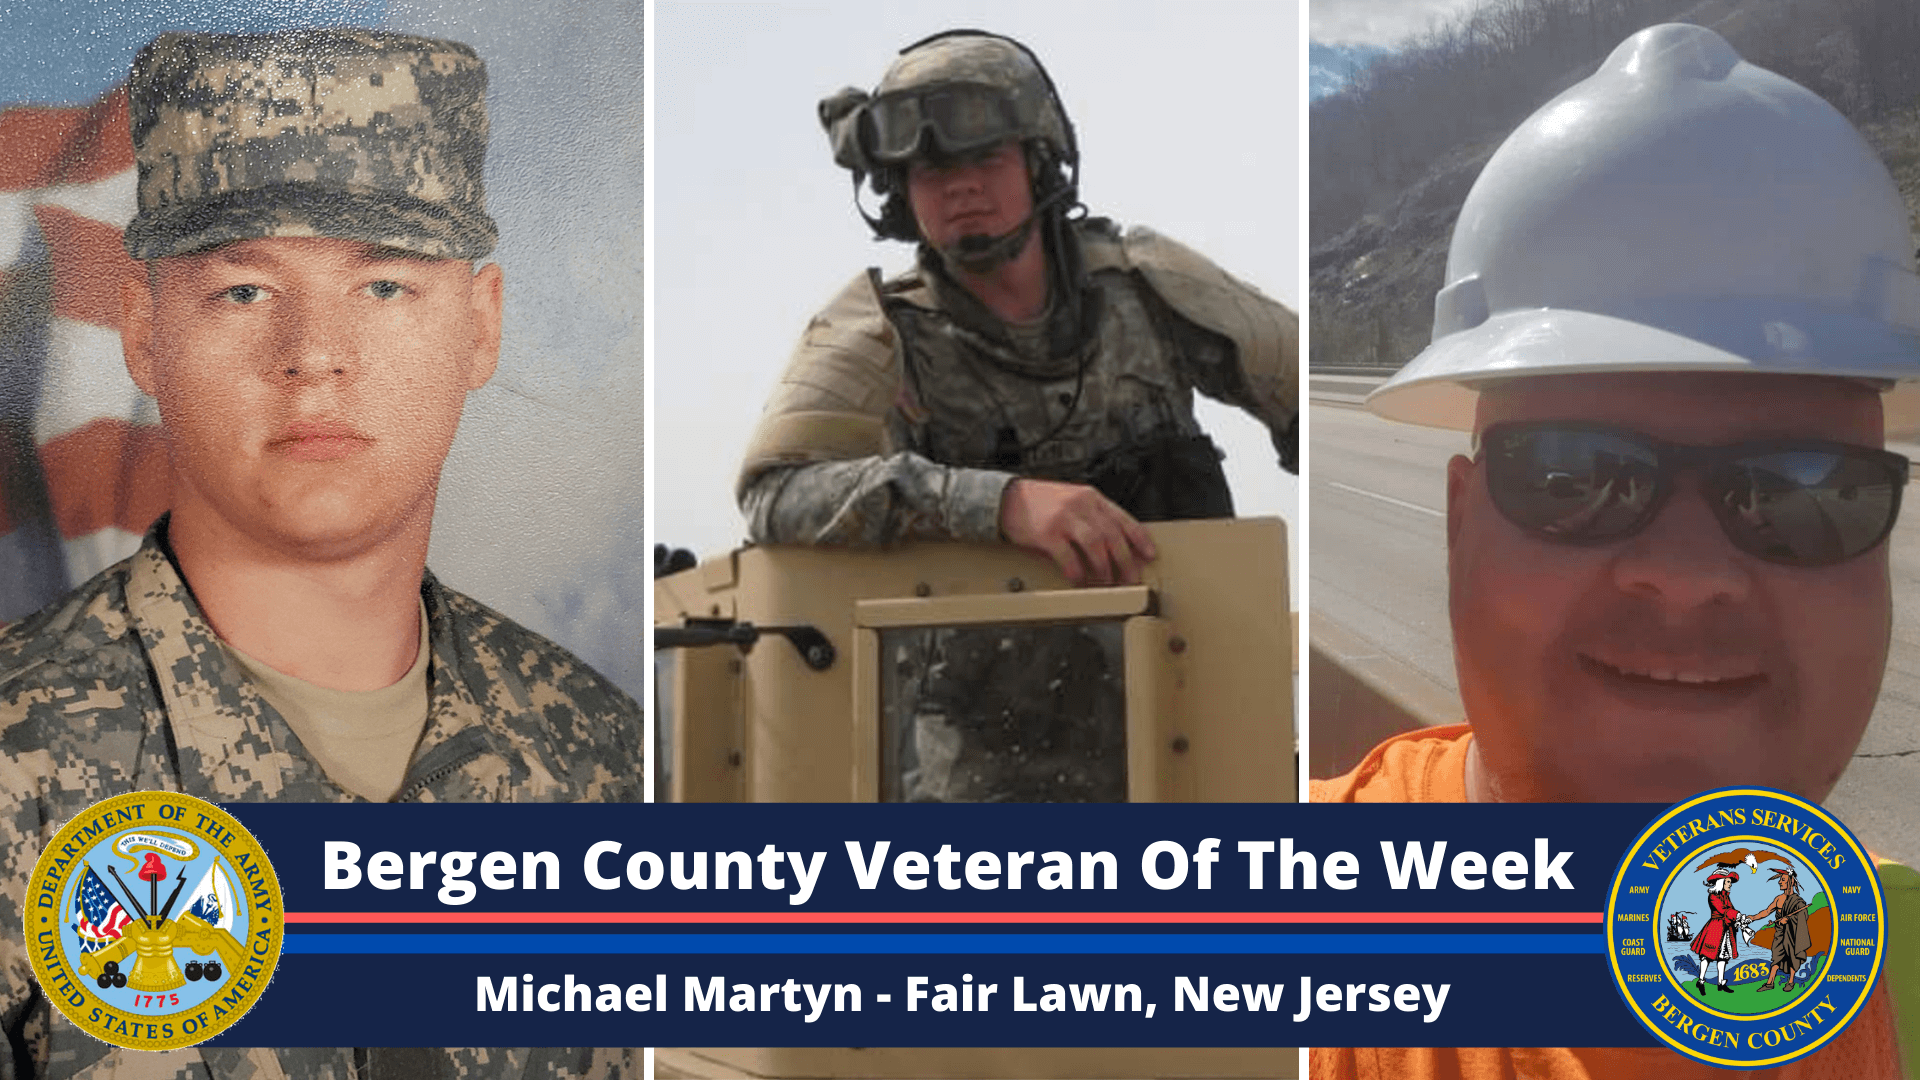 Bergen County Veteran of the Week: Michael Martyn